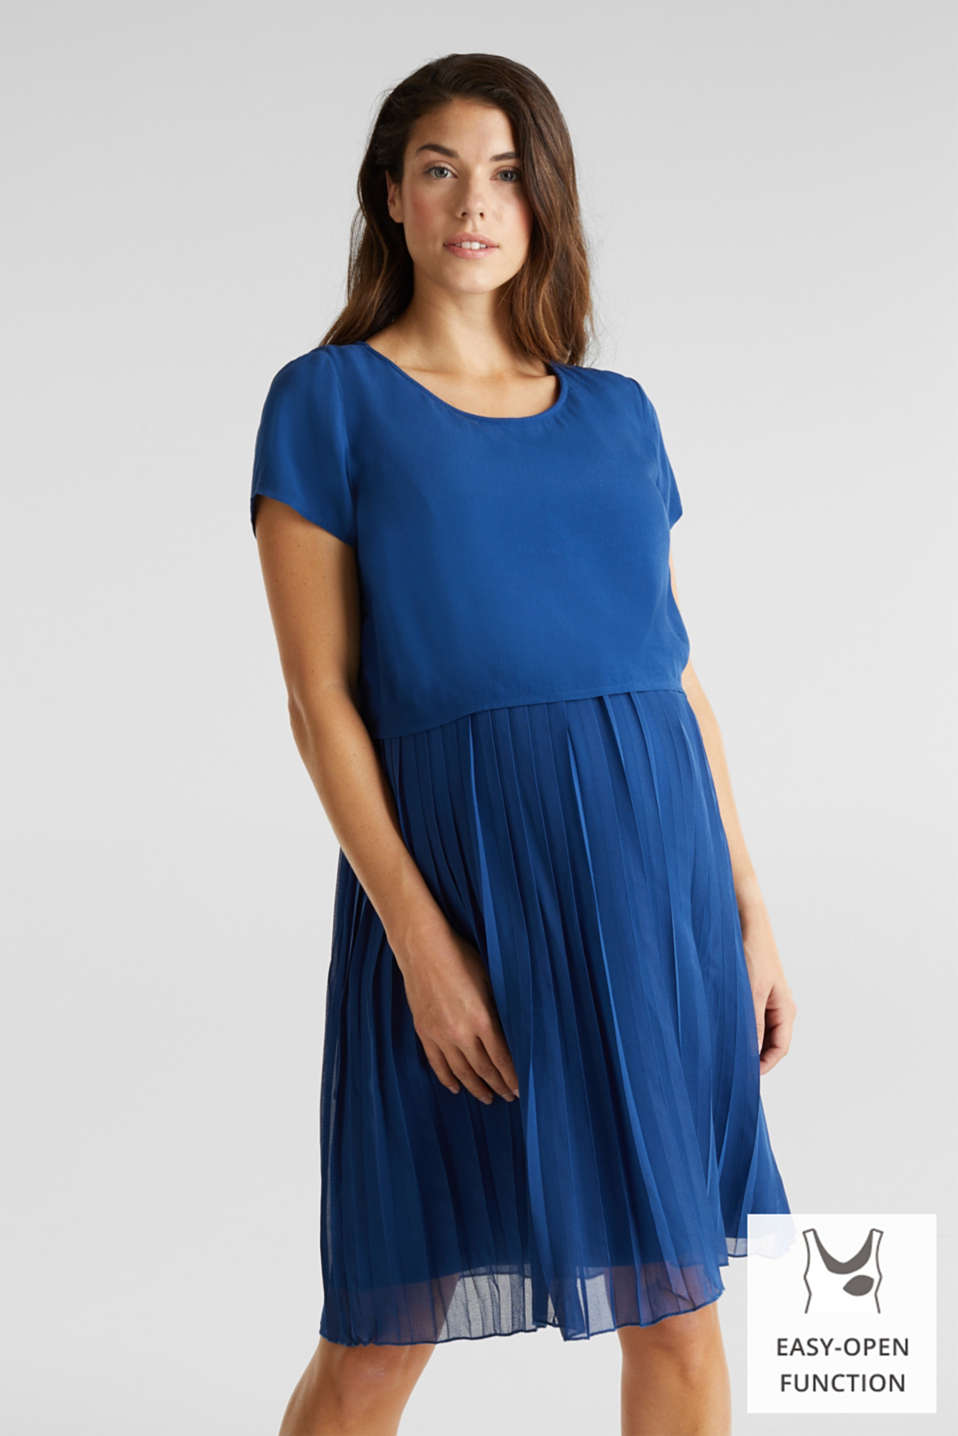 Dress featuring a pleated skirt and a nursing function, LCBRIGHT BLUE, detail image number 0